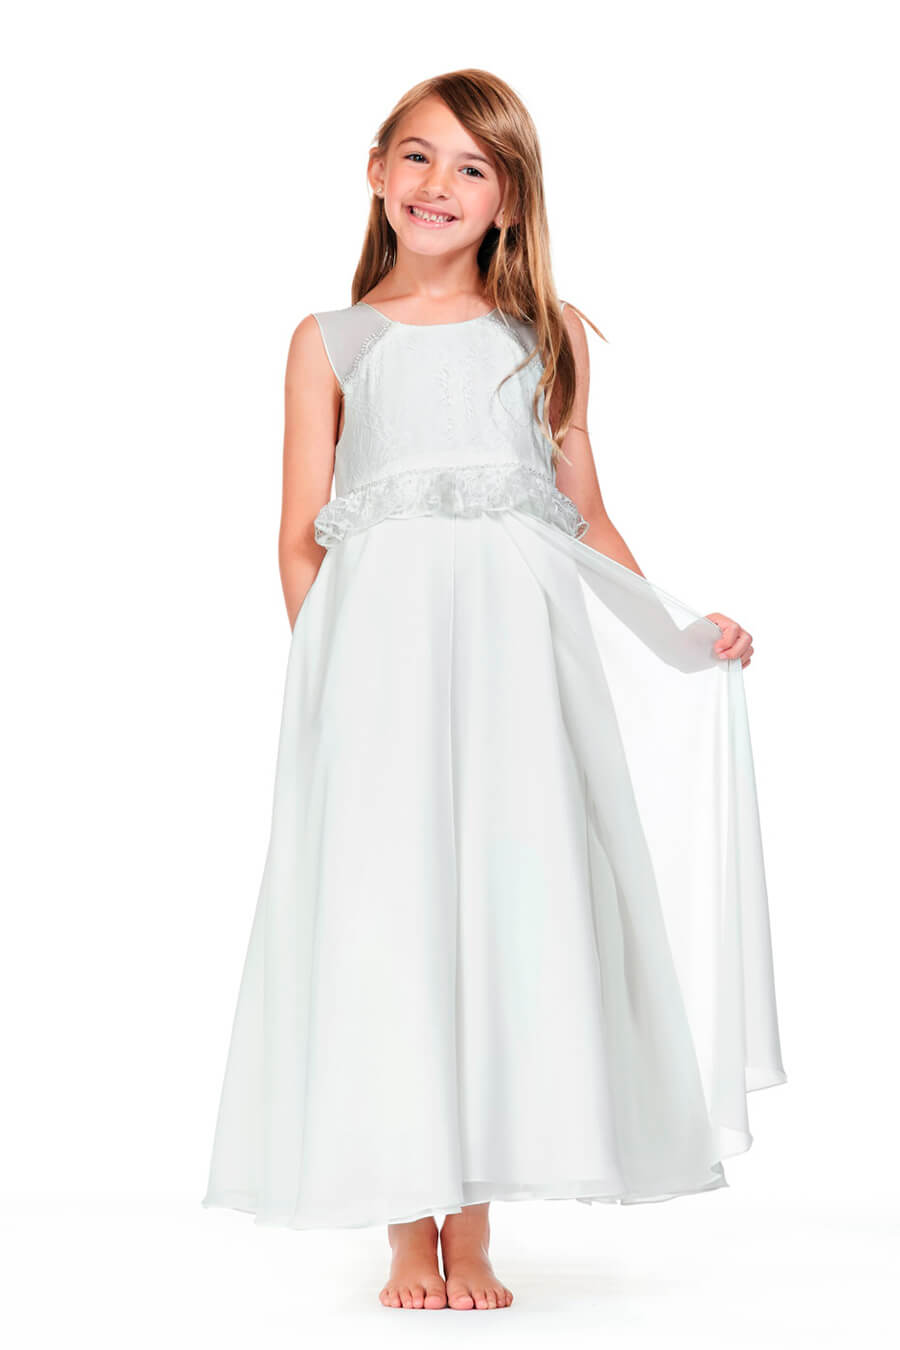 Flower Girls Bridesmaid Dresses Evening Gowns Flower Girl